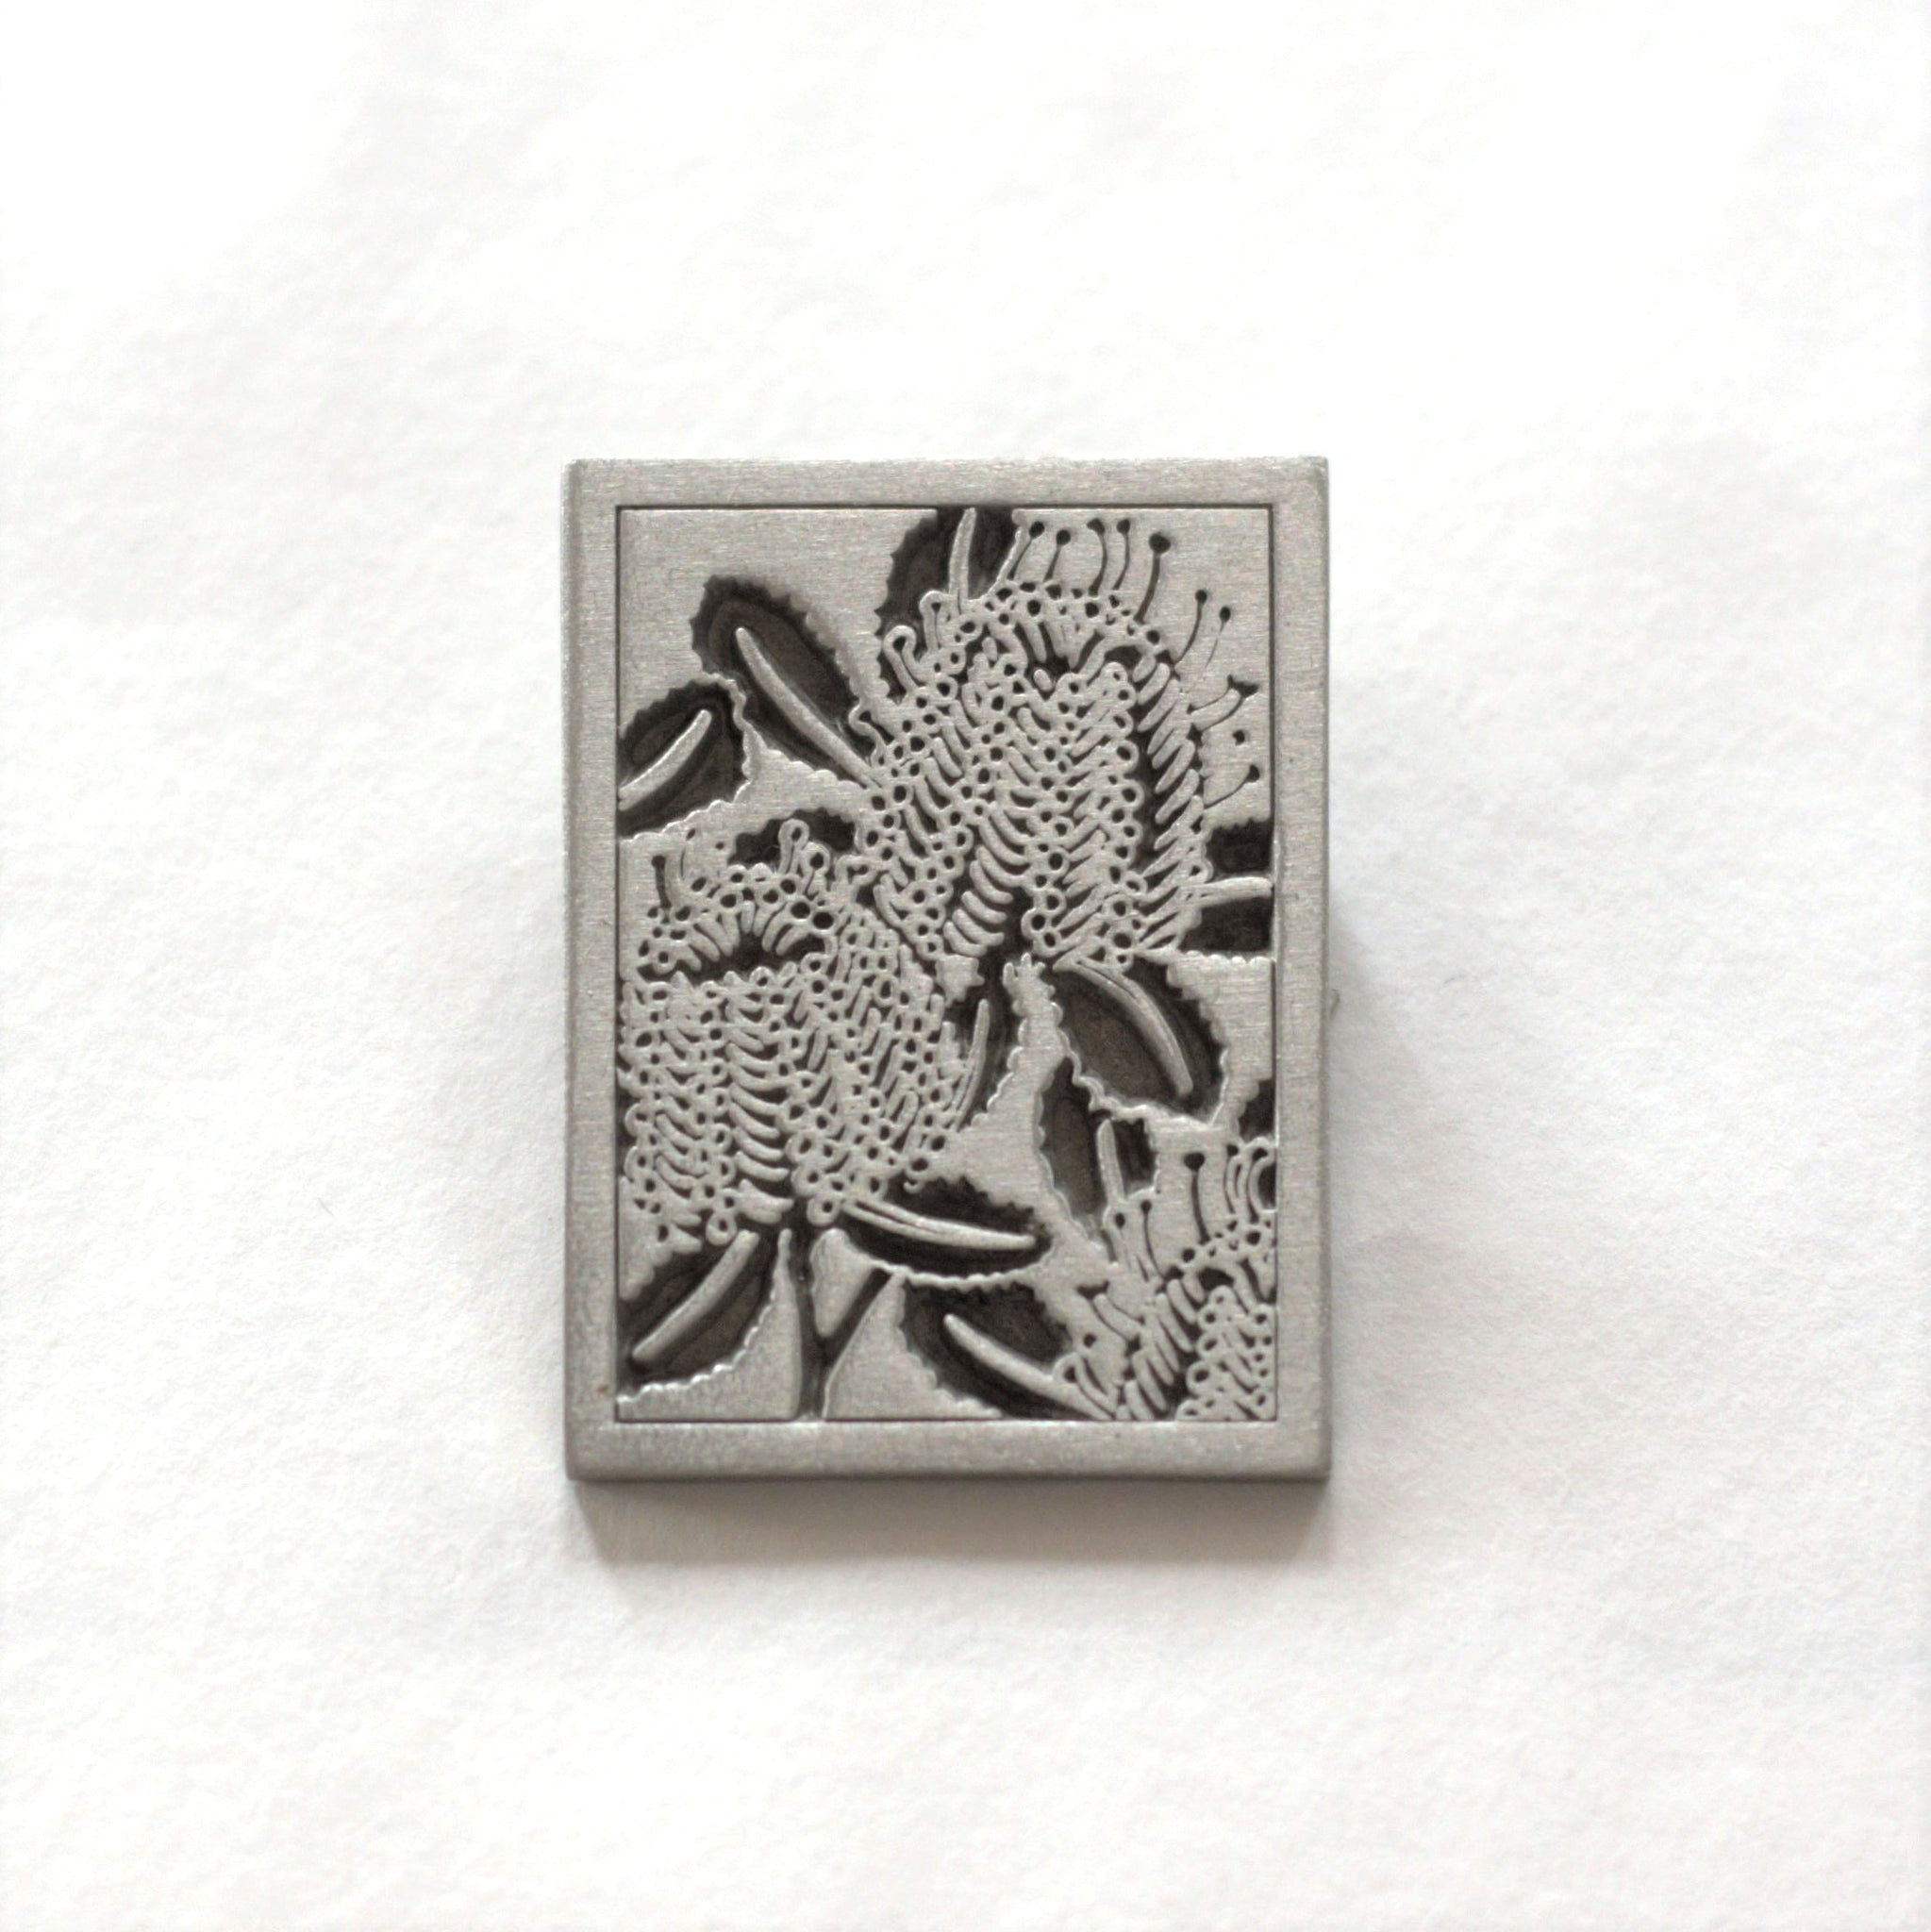 Garry & Jan Zeck -  'Scarlet Banksia' Pewter Brooch (gze103)